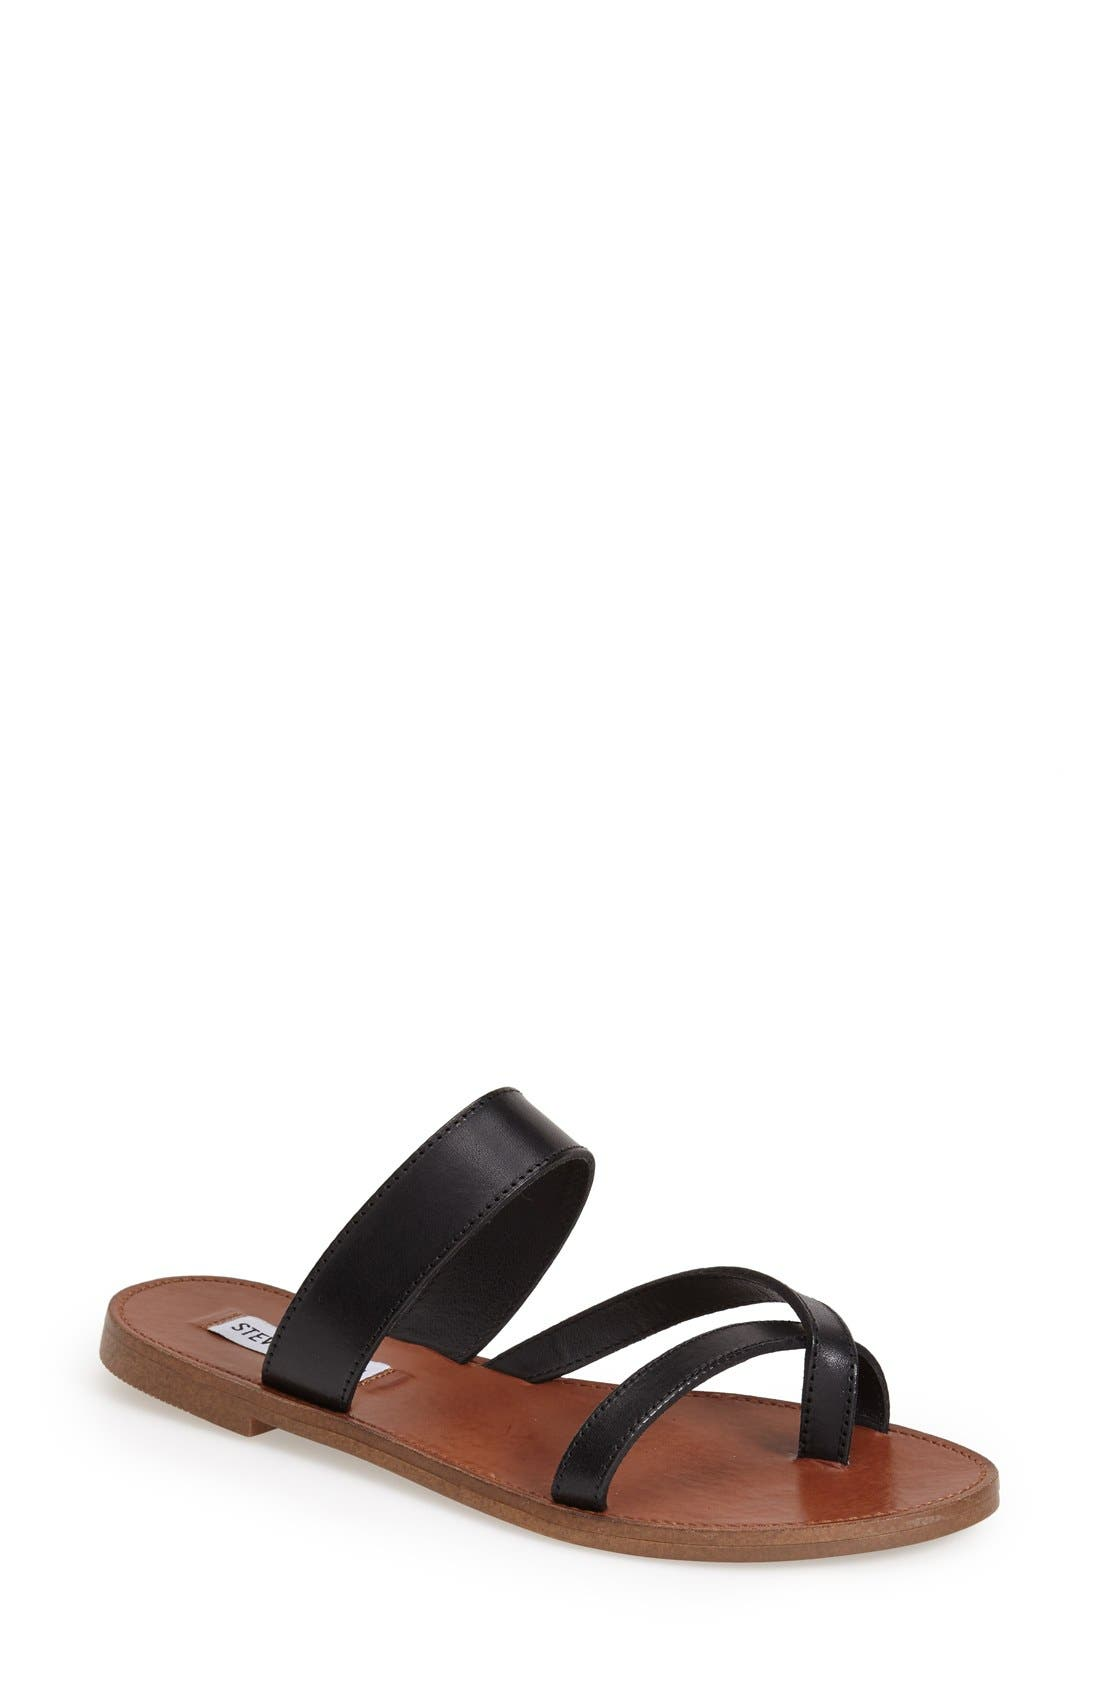 'Aintso' Strappy Leather Toe Ring Sandal,                         Main,                         color, 001